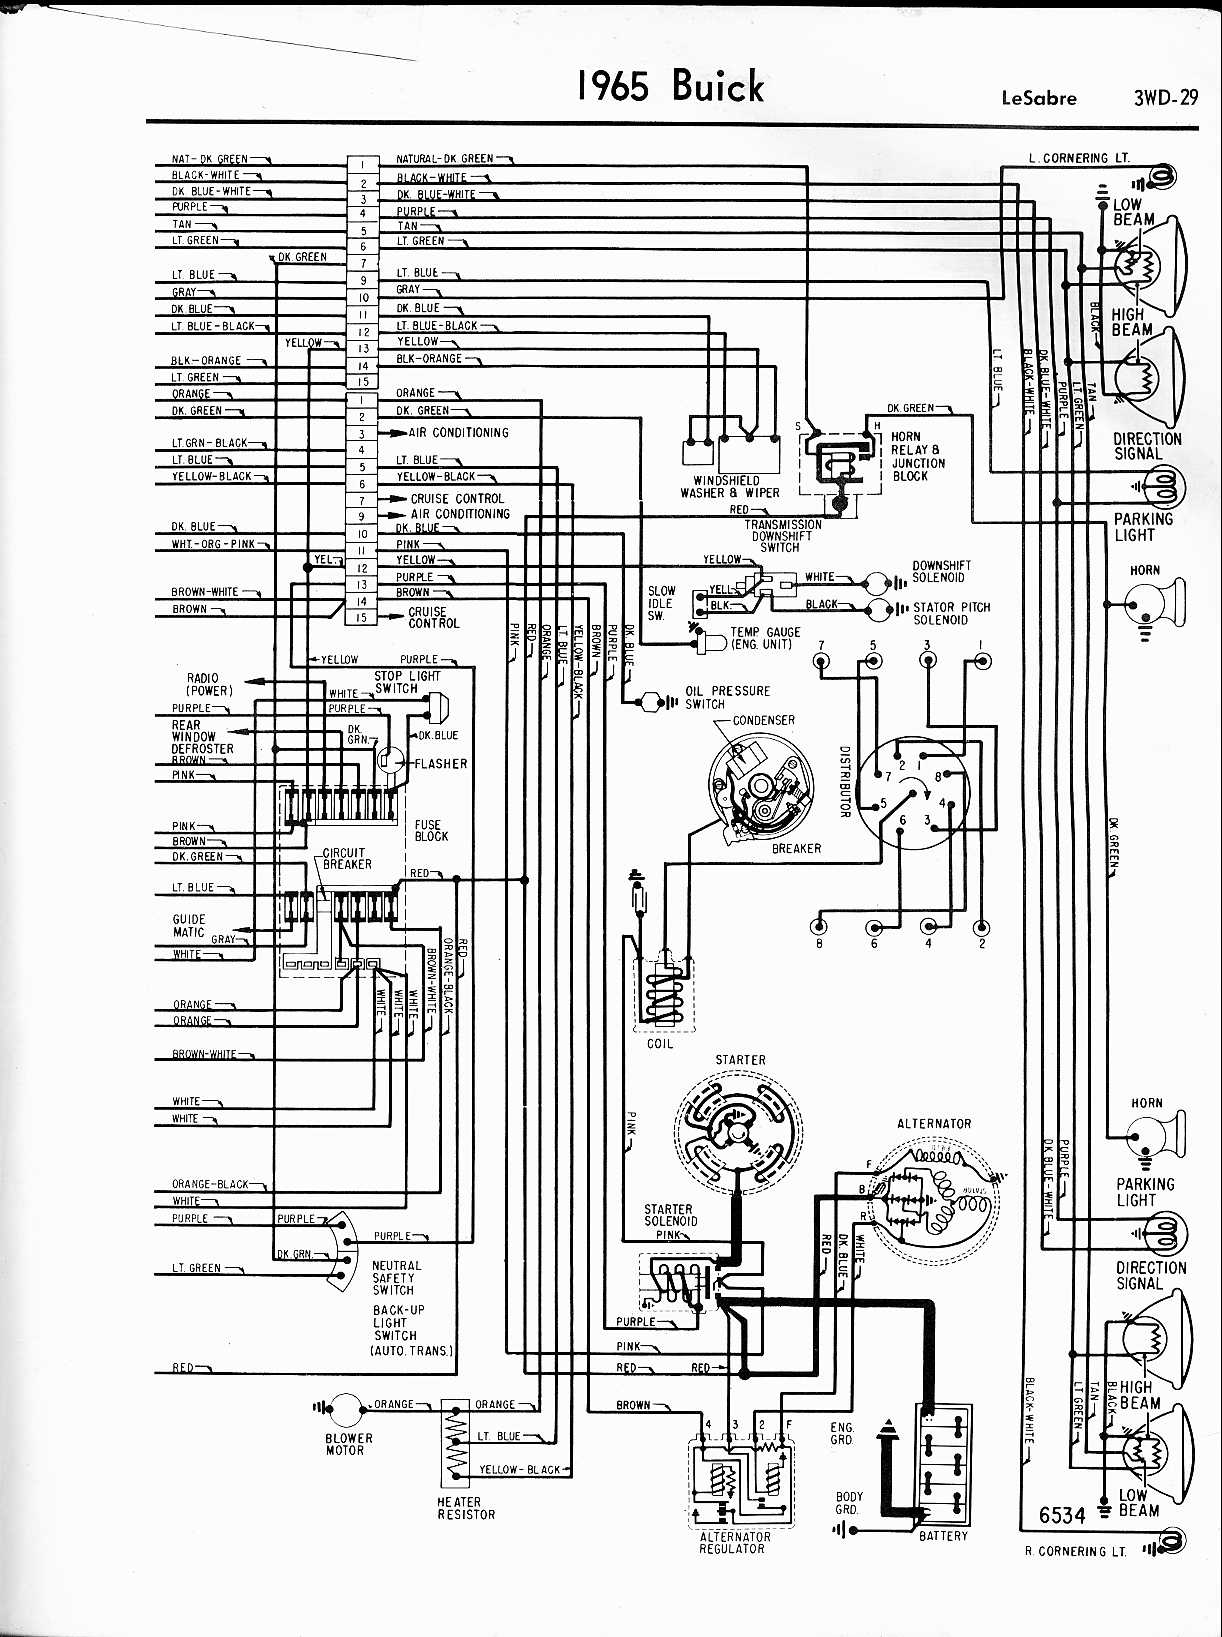 1965 lesabre right half  buick wiring diagrams: 1957-1965 1965 lesabre  right half  nissan wiper motor